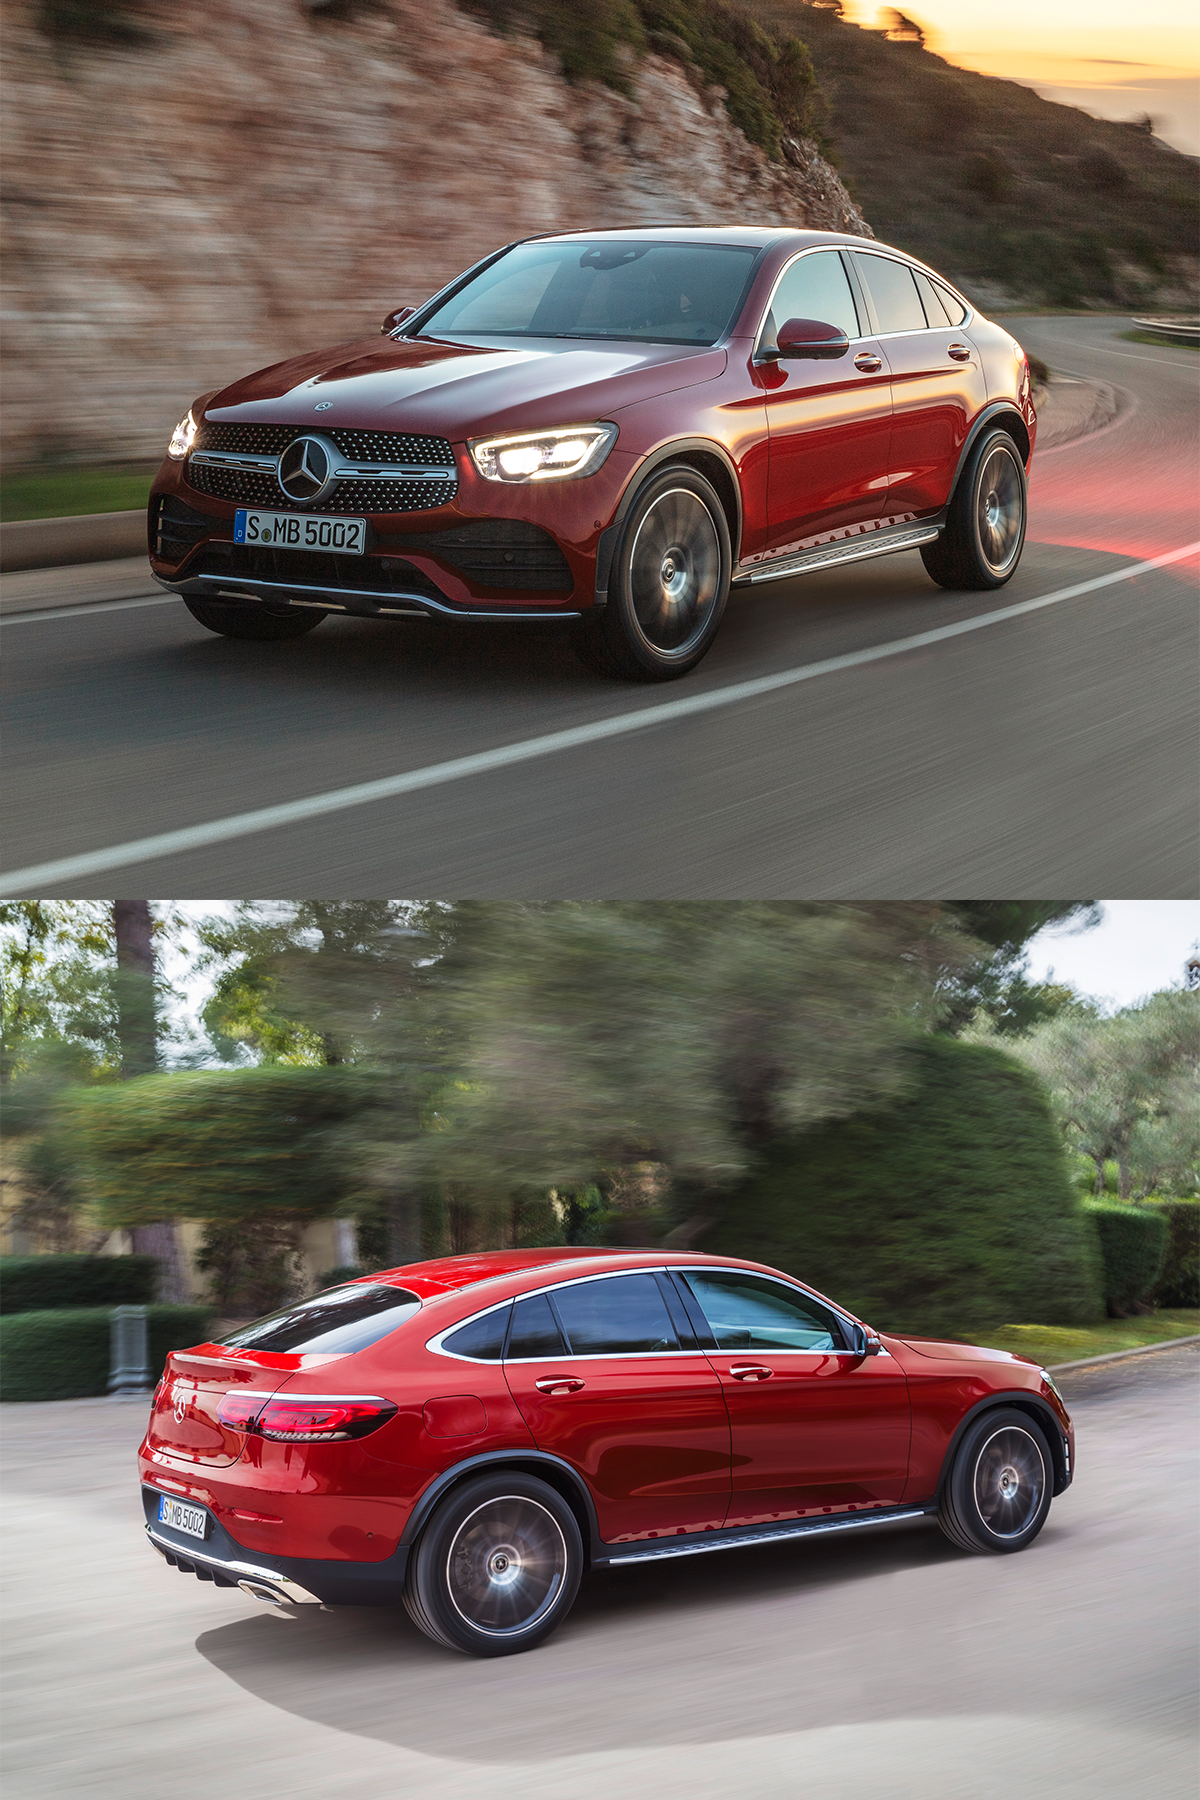 With A Focus On Tech And Engine Upgrades The Updated 2020 Mercedes Benz Glc Coupe Offers A More Value Mercedes Benz Glc Coupe Mercedes Benz Glc Mercedes Benz